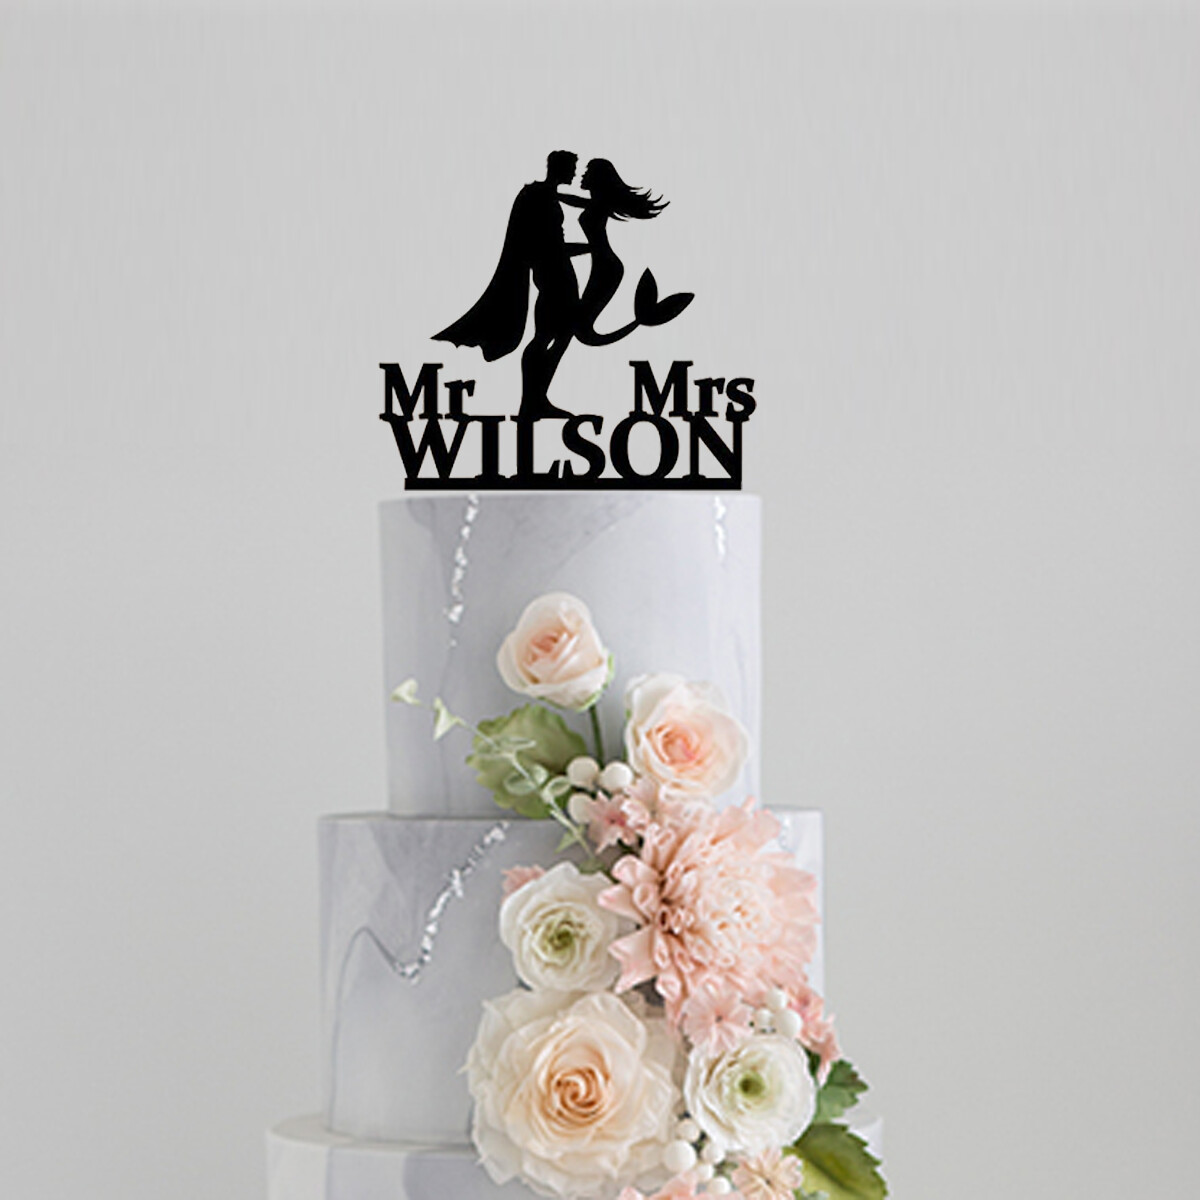 Personalized name Wedding Cake Topper,Superman and little mermaid Custom Cake Topper, Mr and Mrs Wedding Cake Topper